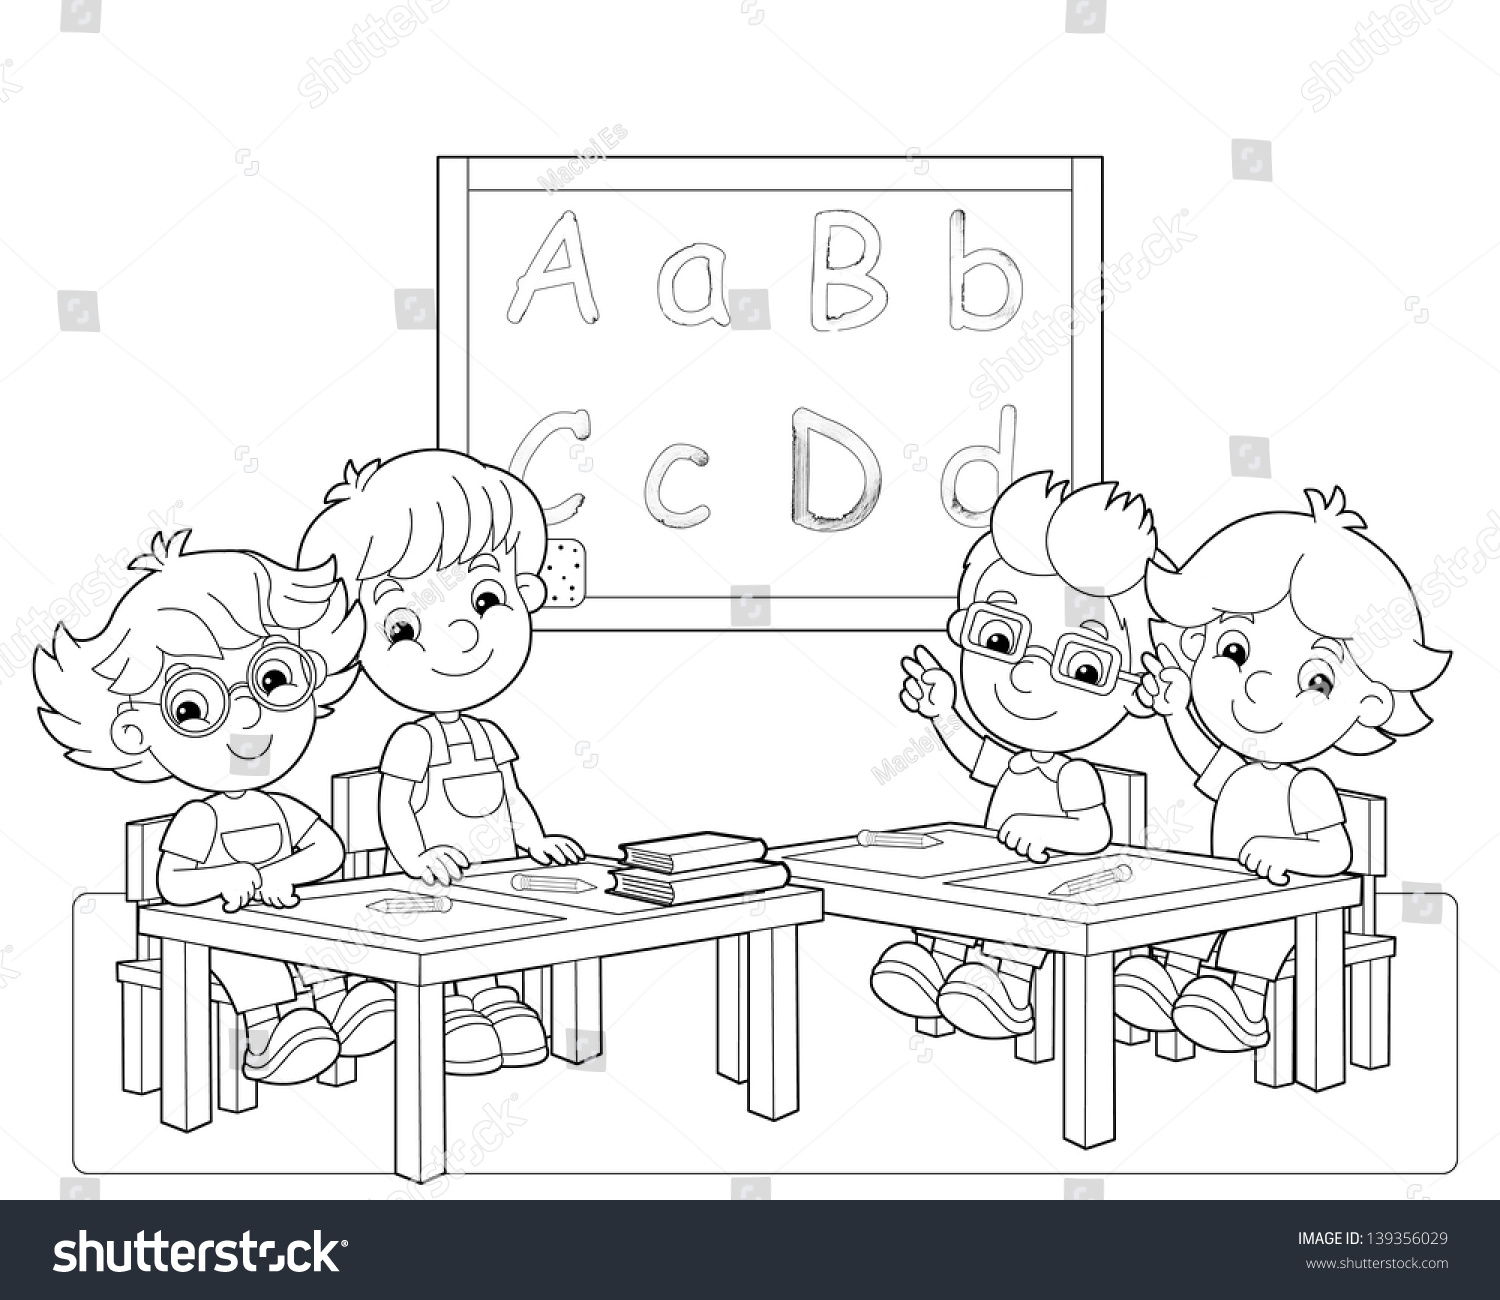 Clip Art Classroom Rules Coloring Pages classroom coloring pages eassume com page az pages